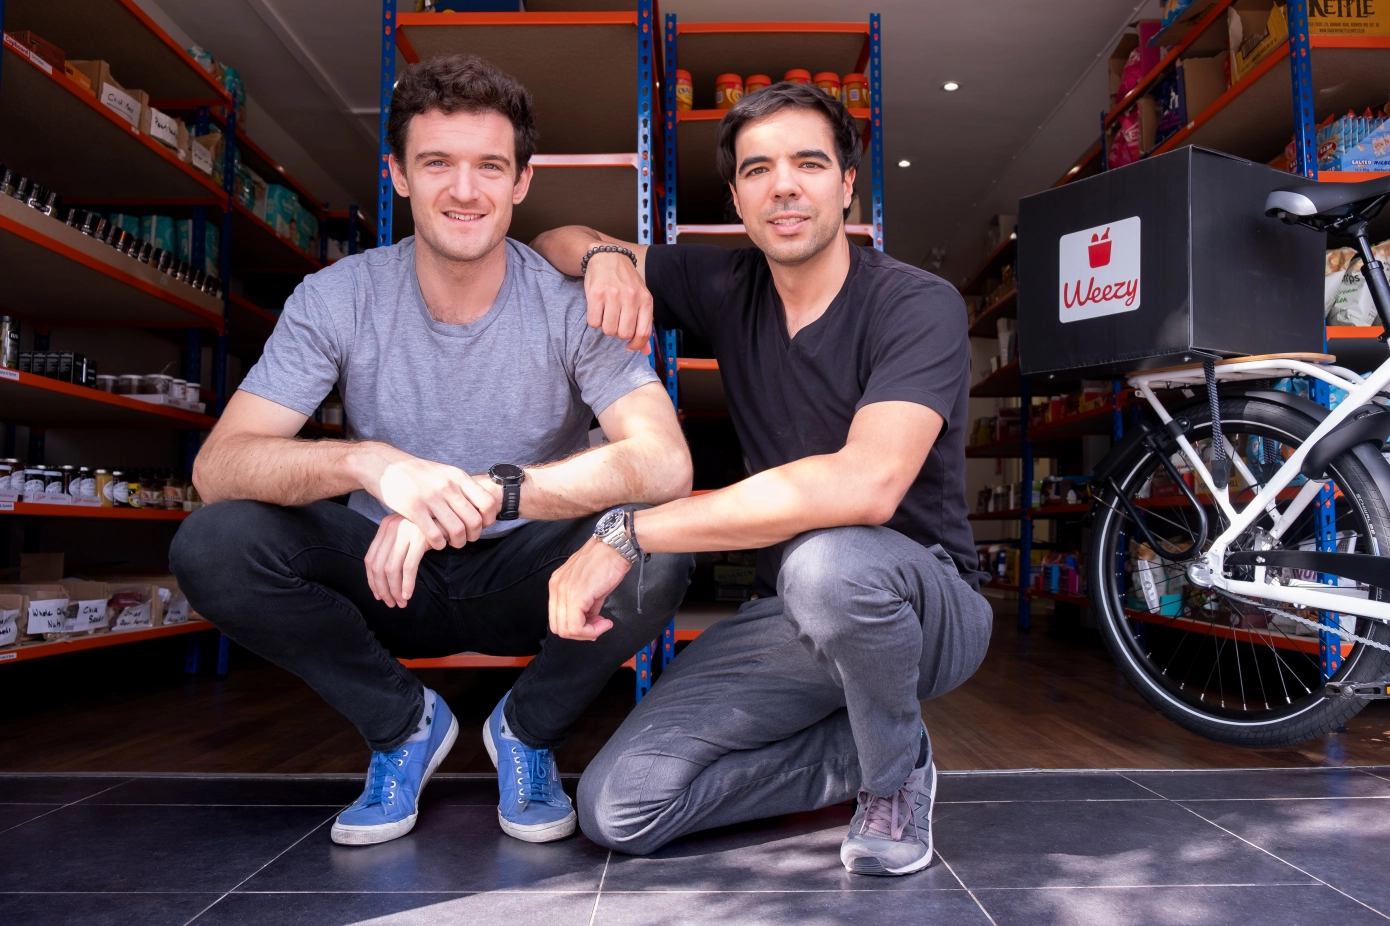 London-based Weezy raises seed for 15-minute grocery delivery app